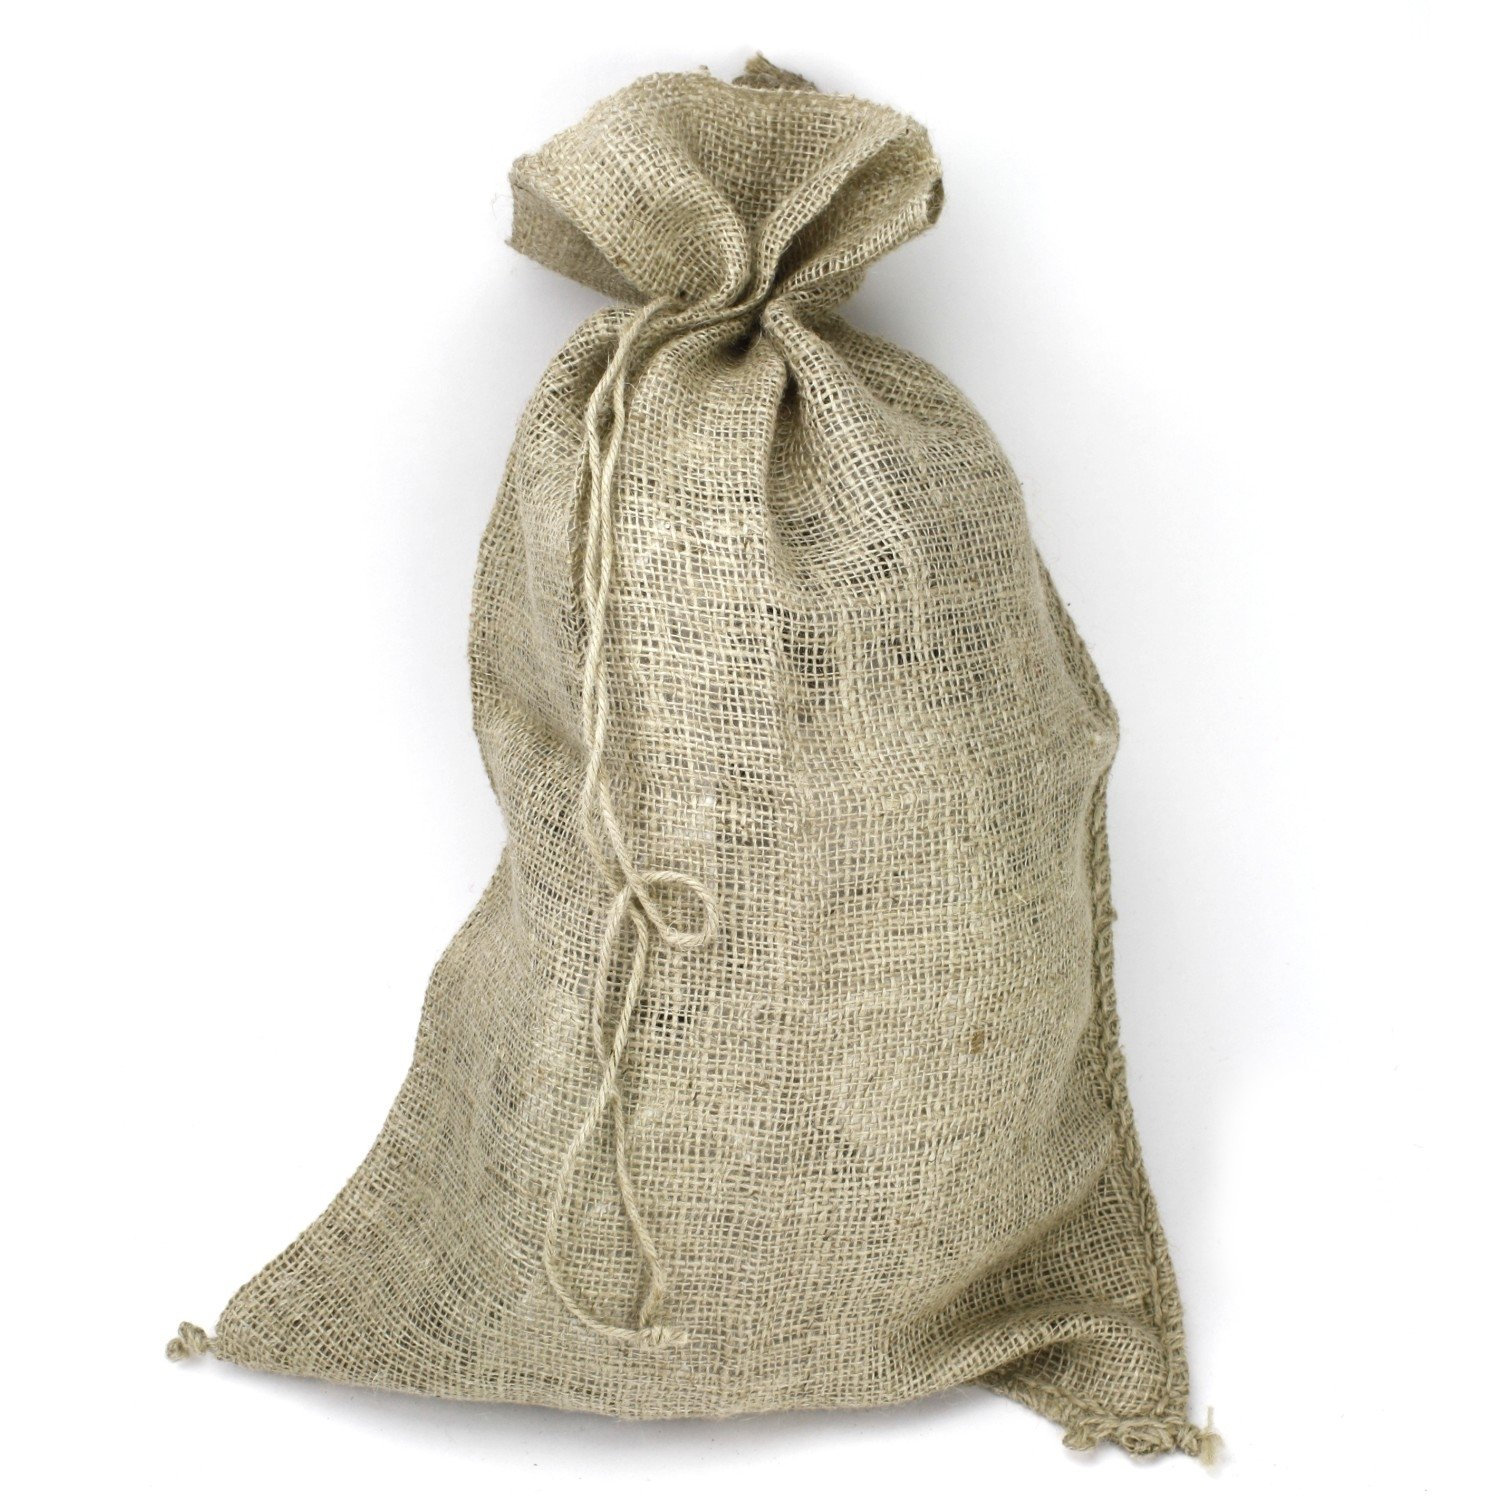 Kel-Toy Christmas and Everyday Gift Wrap & Crafting Jute Sacks in 3 Colors BUYERS' CHOICE (2, natural)